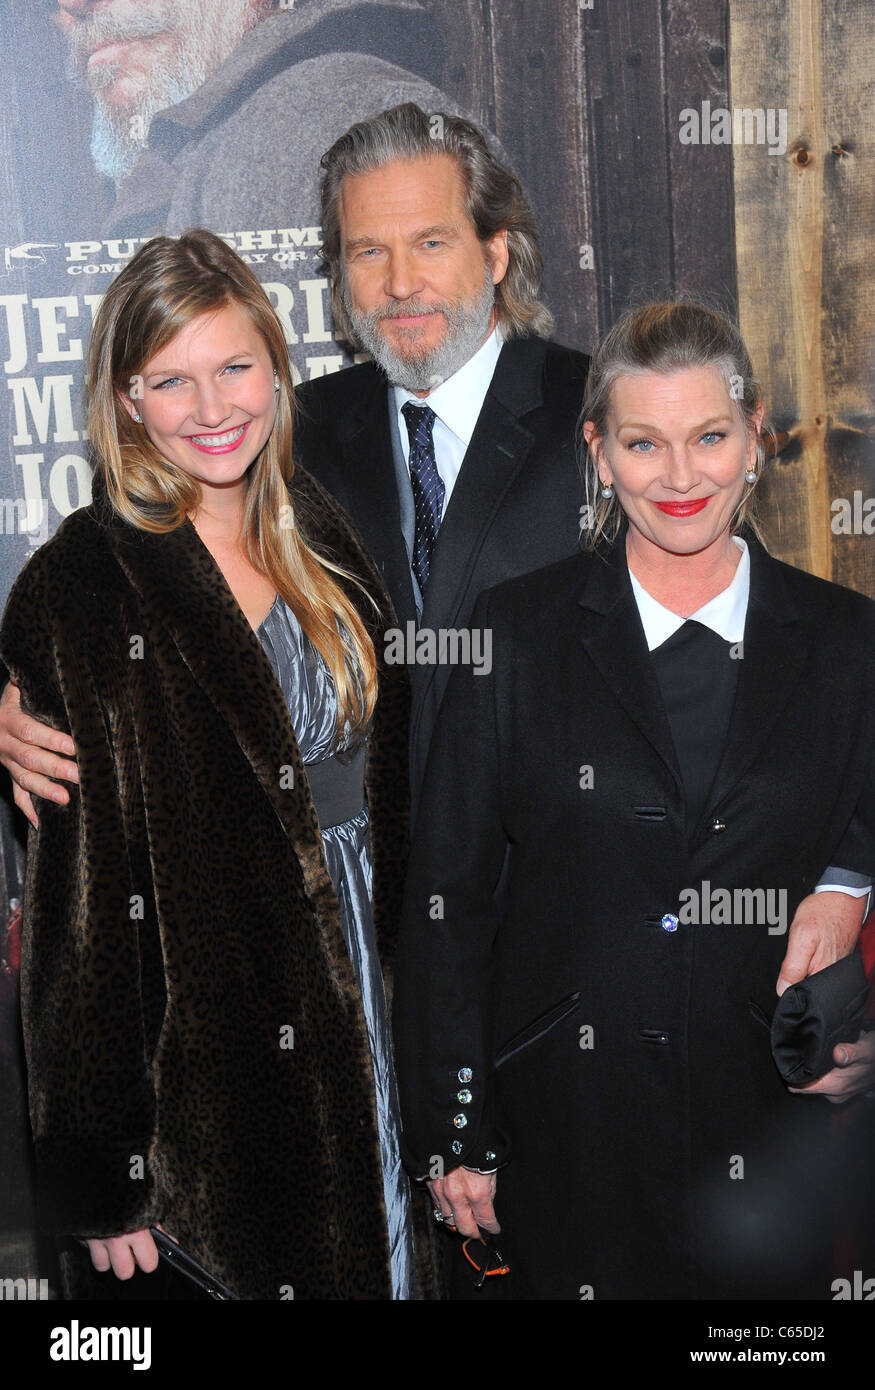 Jessie Bridges, Jeff Bridges, Susan Bridges at arrivals for TRUE GRIT Premiere, The Ziegfeld Theatre, New York, - Stock Image